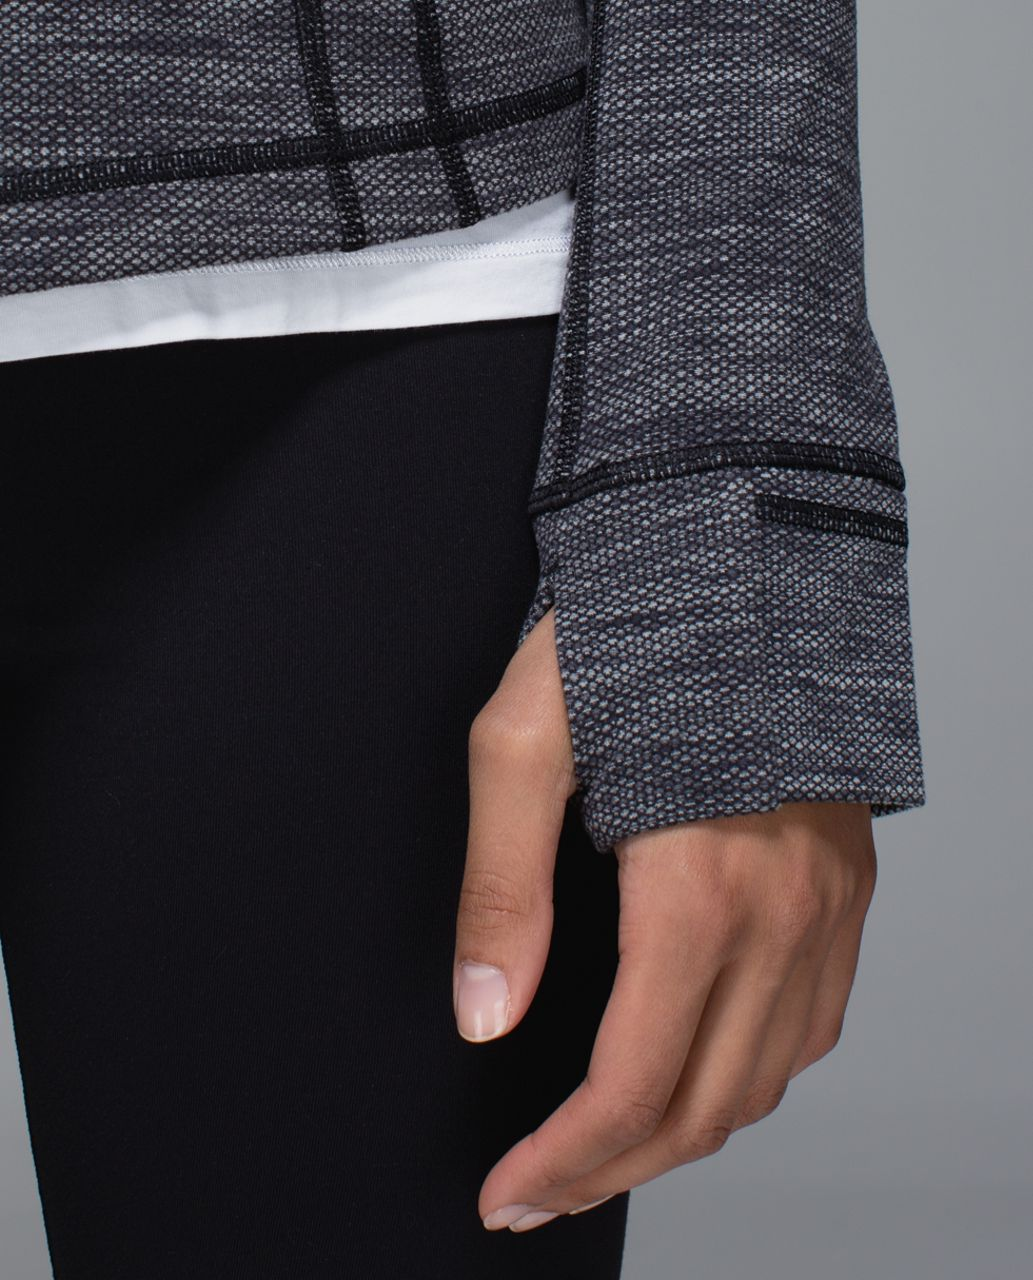 Lululemon Define Jacket - Diamond Jacquard Space Dye Black Slate